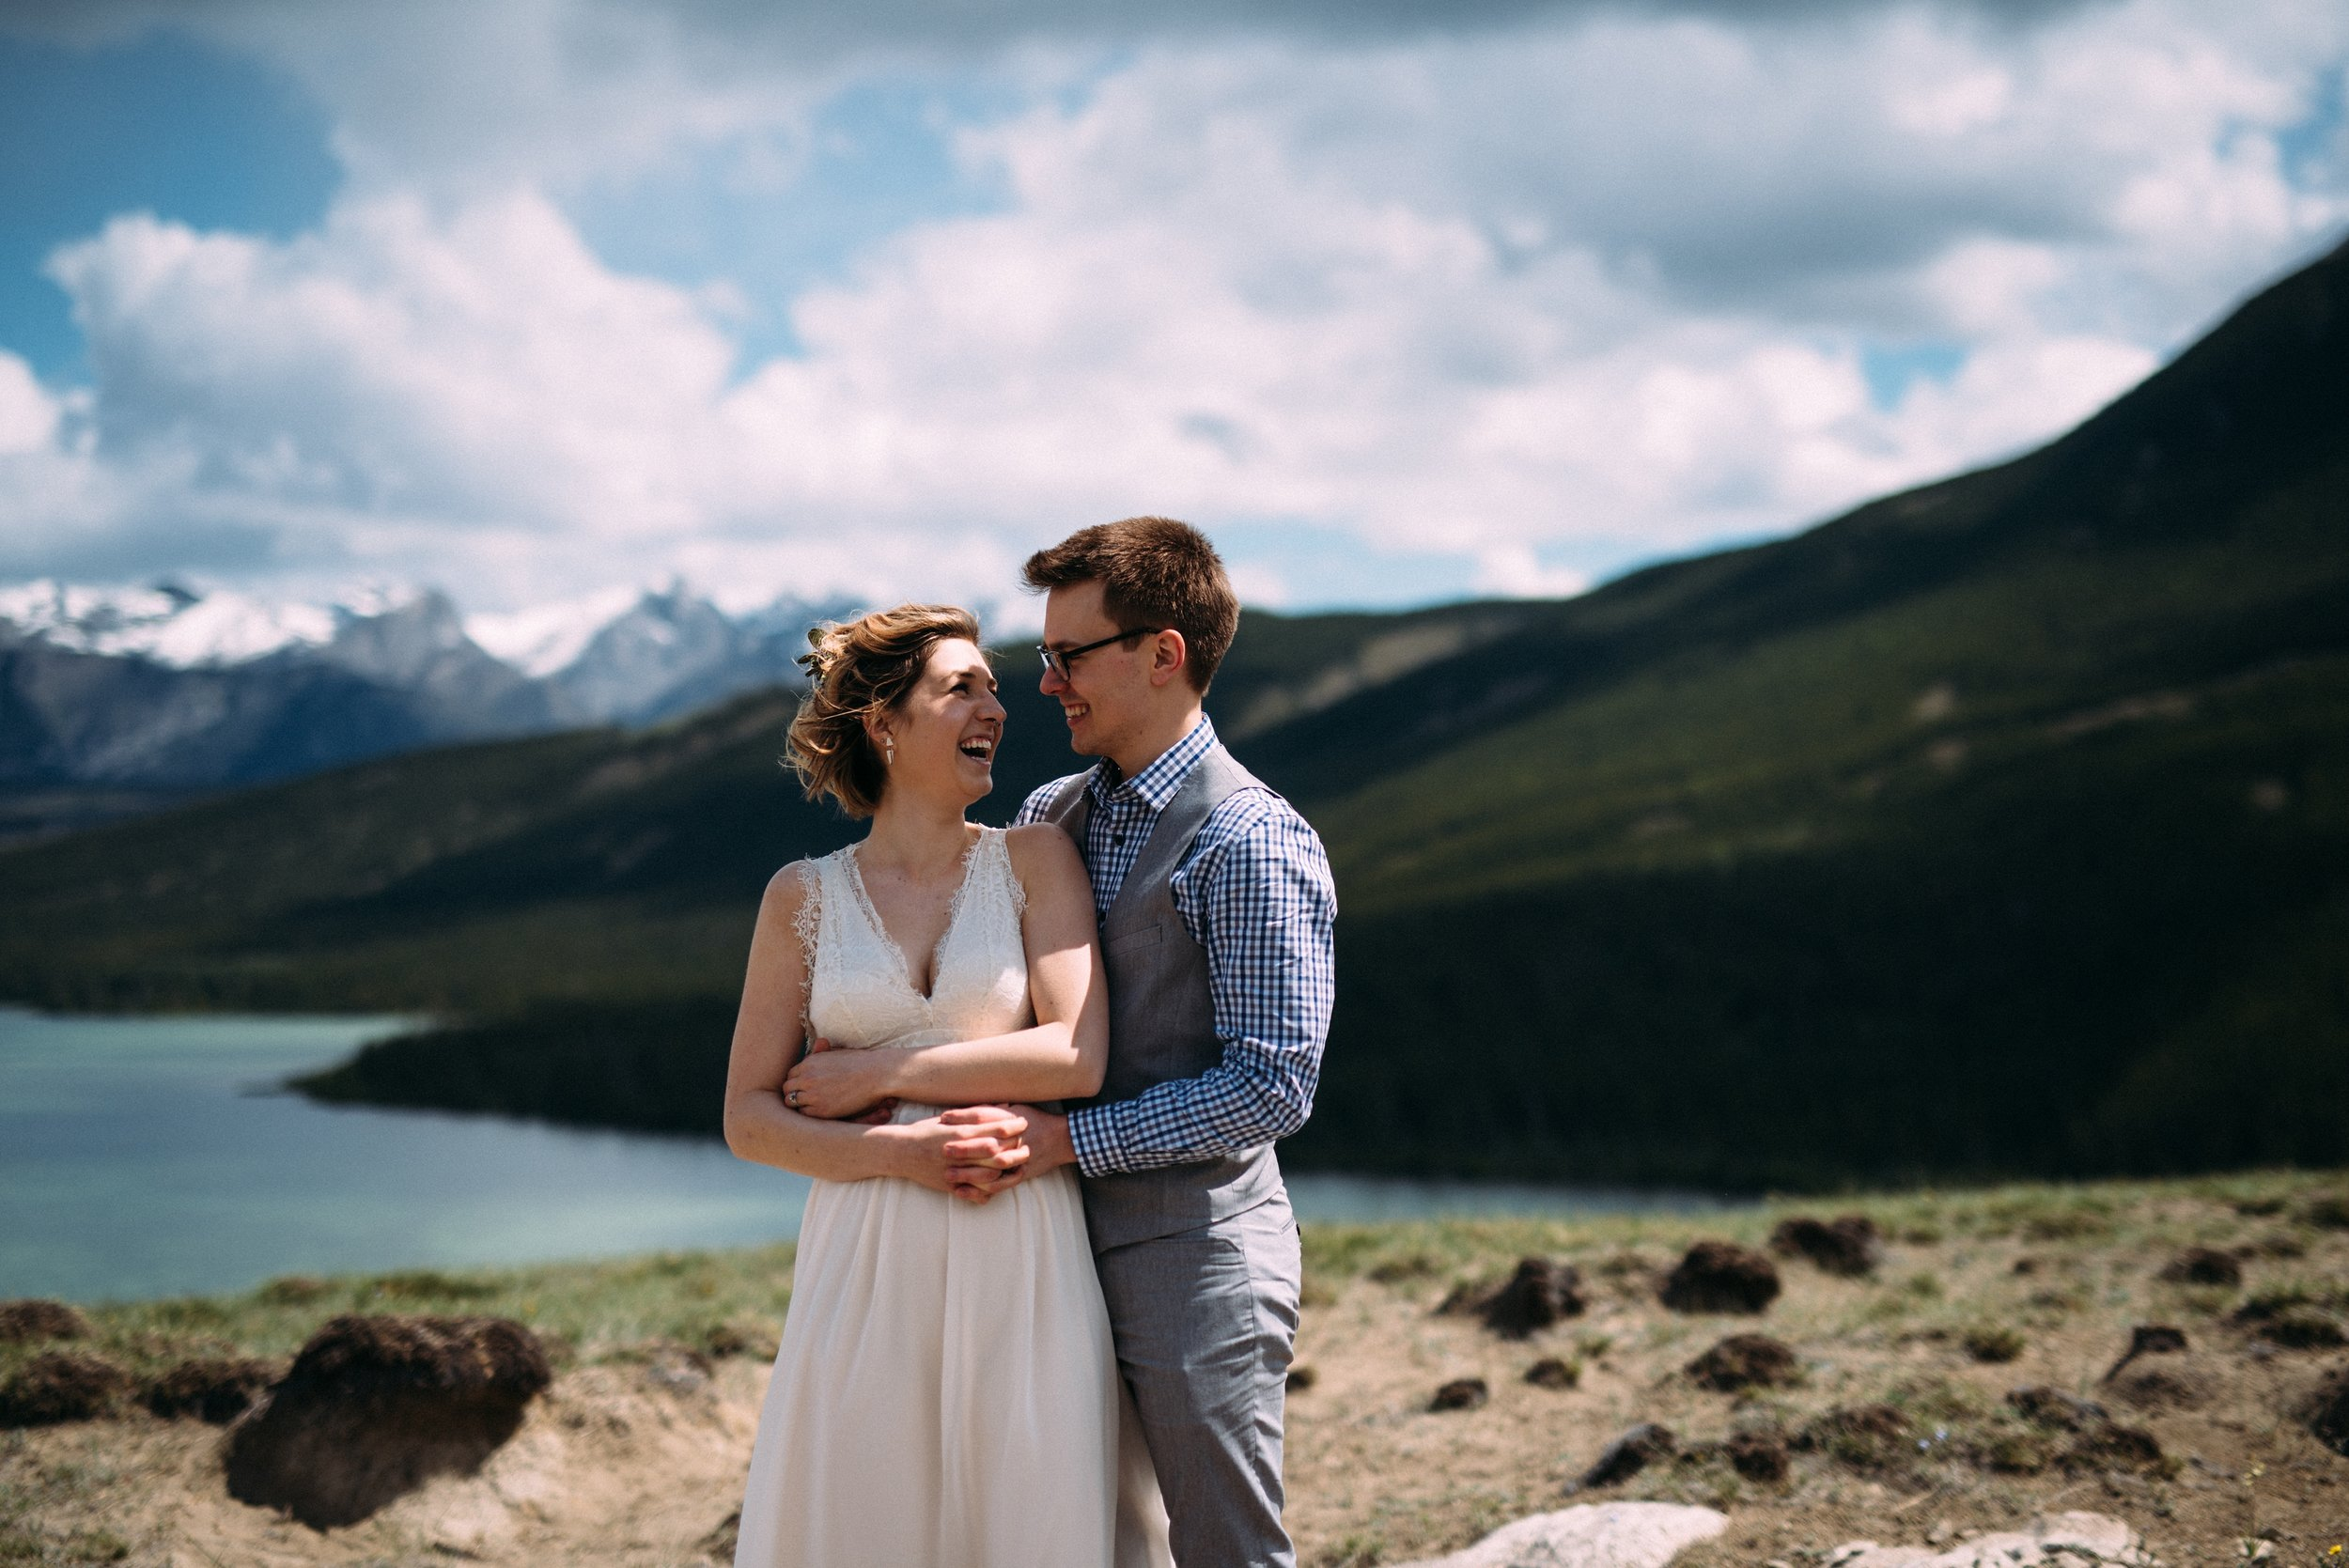 kaihla_tonai_intimate_wedding_elopement_photographer_3845